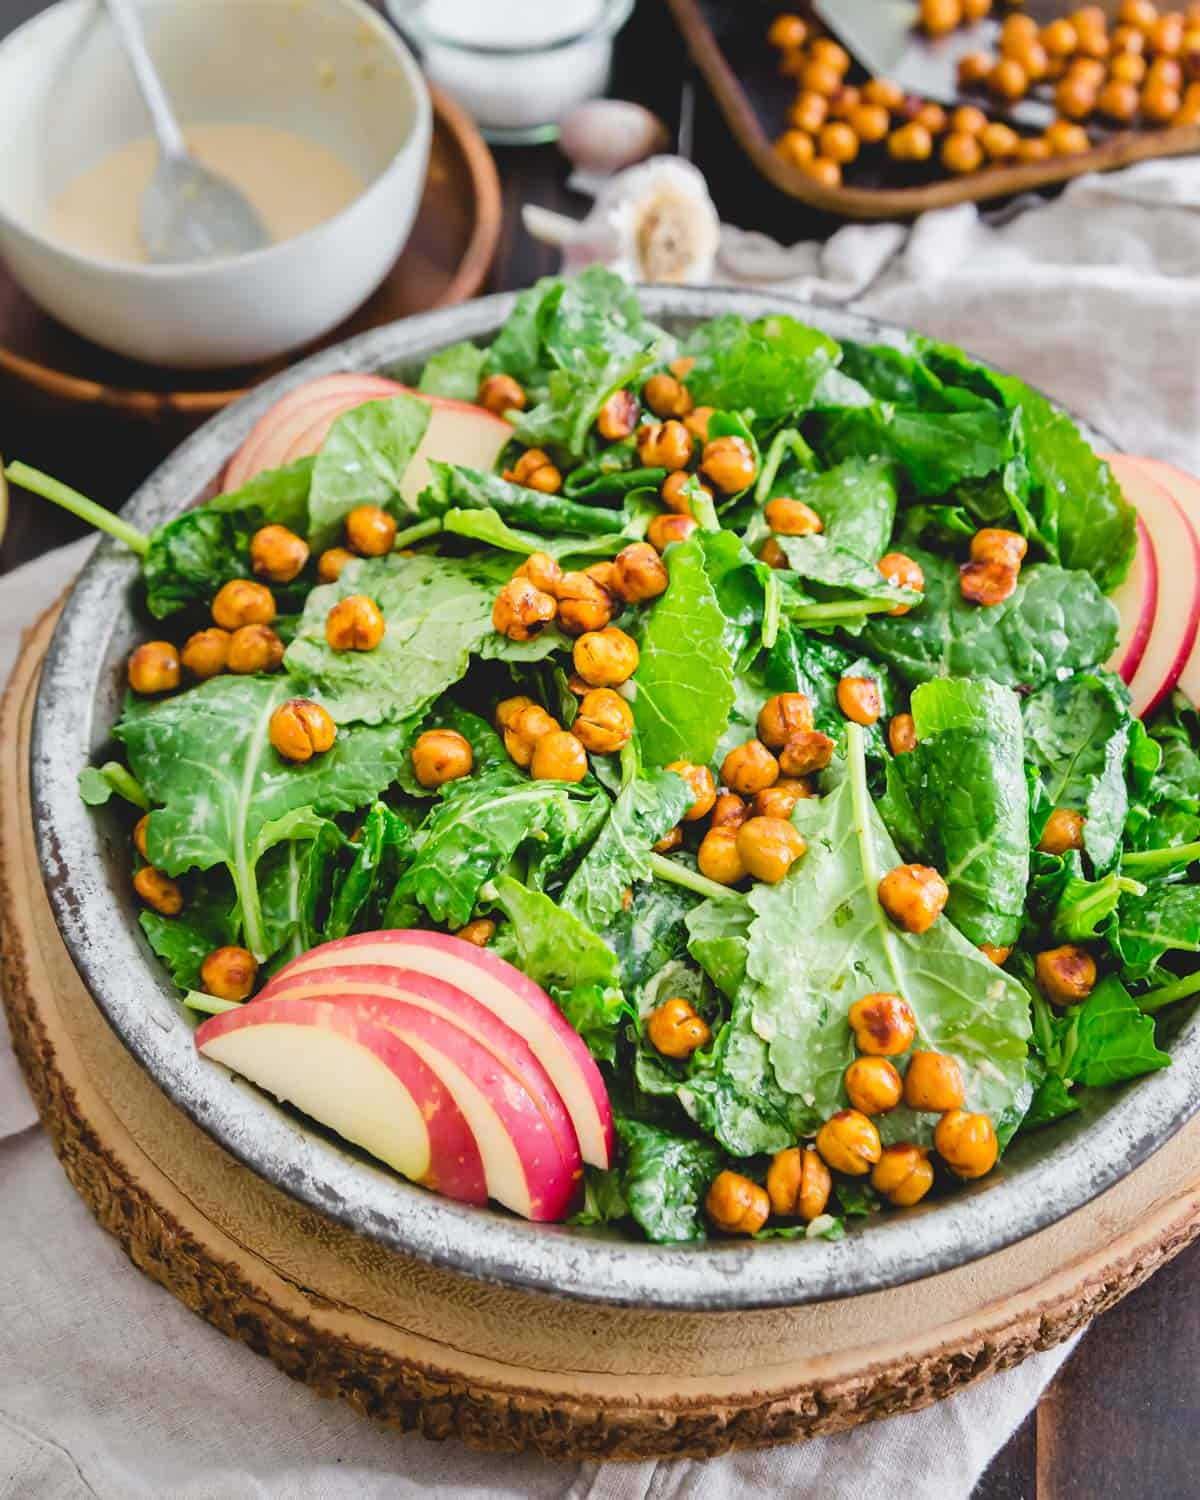 A satisfying and nutritious plant-based baby kale salad with roasted chickpeas, apples and a creamy tahini dressing.